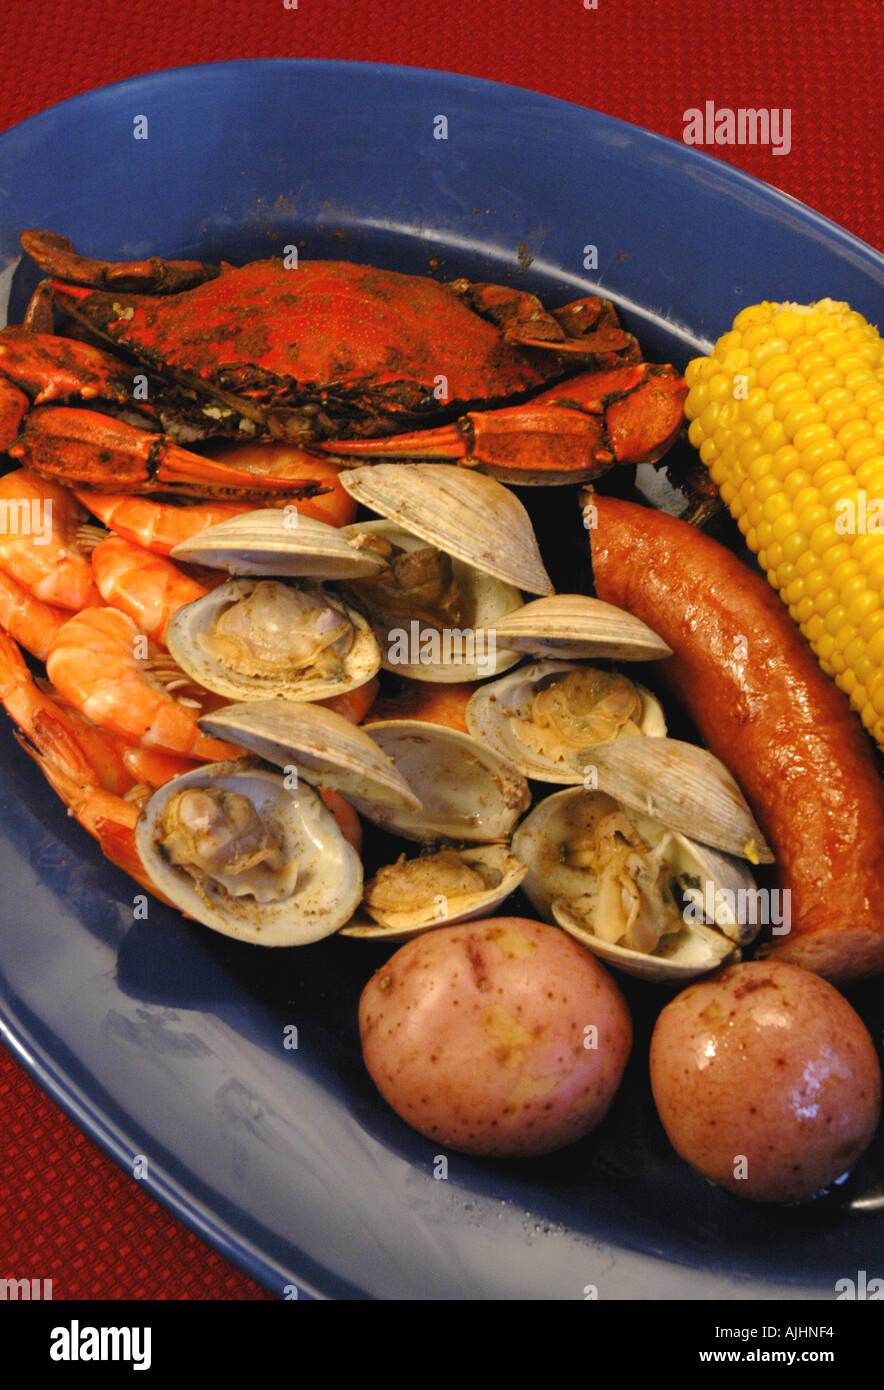 Seafood low country boil cedar key florida fl local cuisine foods - Stock Image